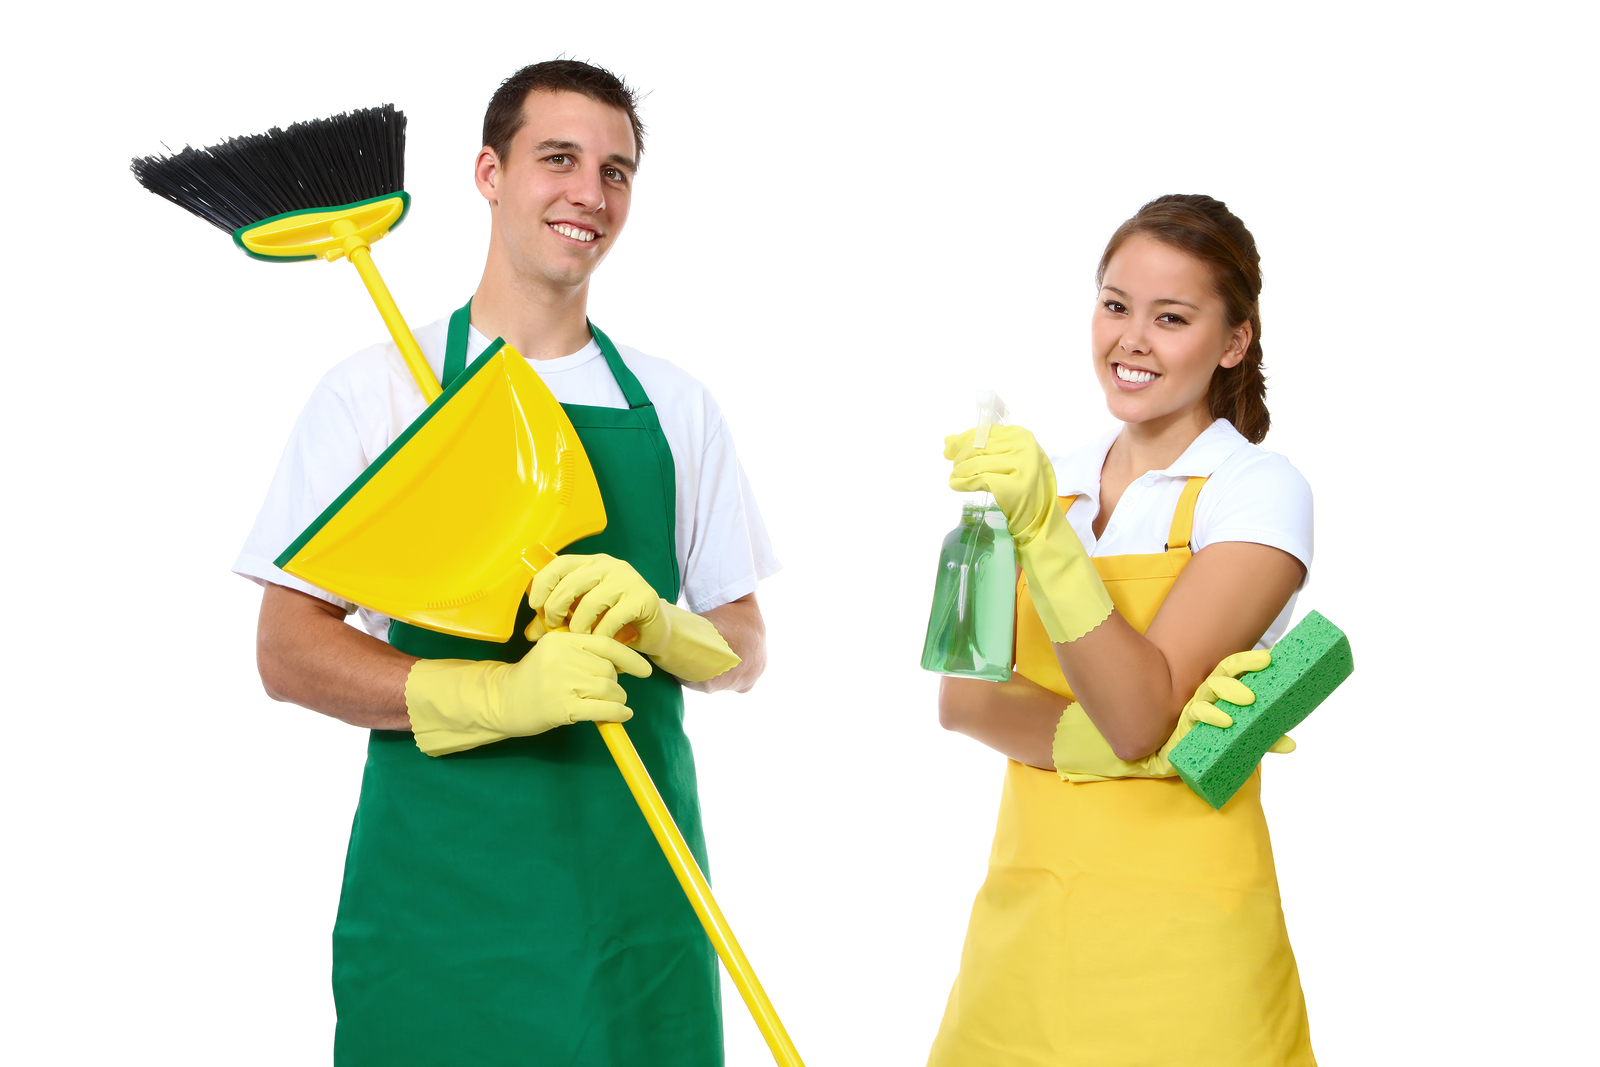 zdroj: http://cleaning-company-leads.com/wp-content/uploads/2010/04/bigstockphoto_Man_And_Woman_Cleaning_4270403.jpg